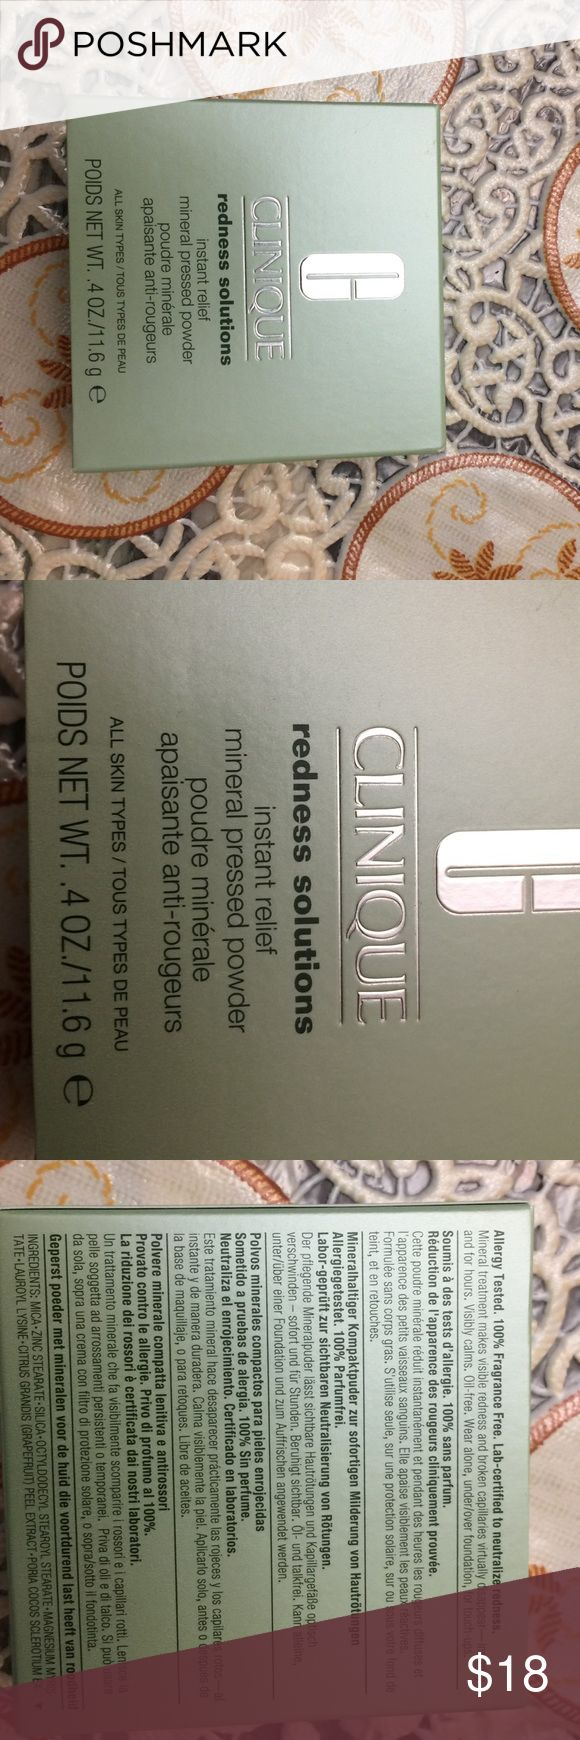 CLINIQUE redness solutions mineral pressed powder CLINIQUE redness solutions instant relief mineral pressed powder. New in box. All skin types. Net WT .4 oz/11.6 g. Allergy tested. 100% fragrance free. Lab certified to neutralize redness. Clinique Makeup Face Powder